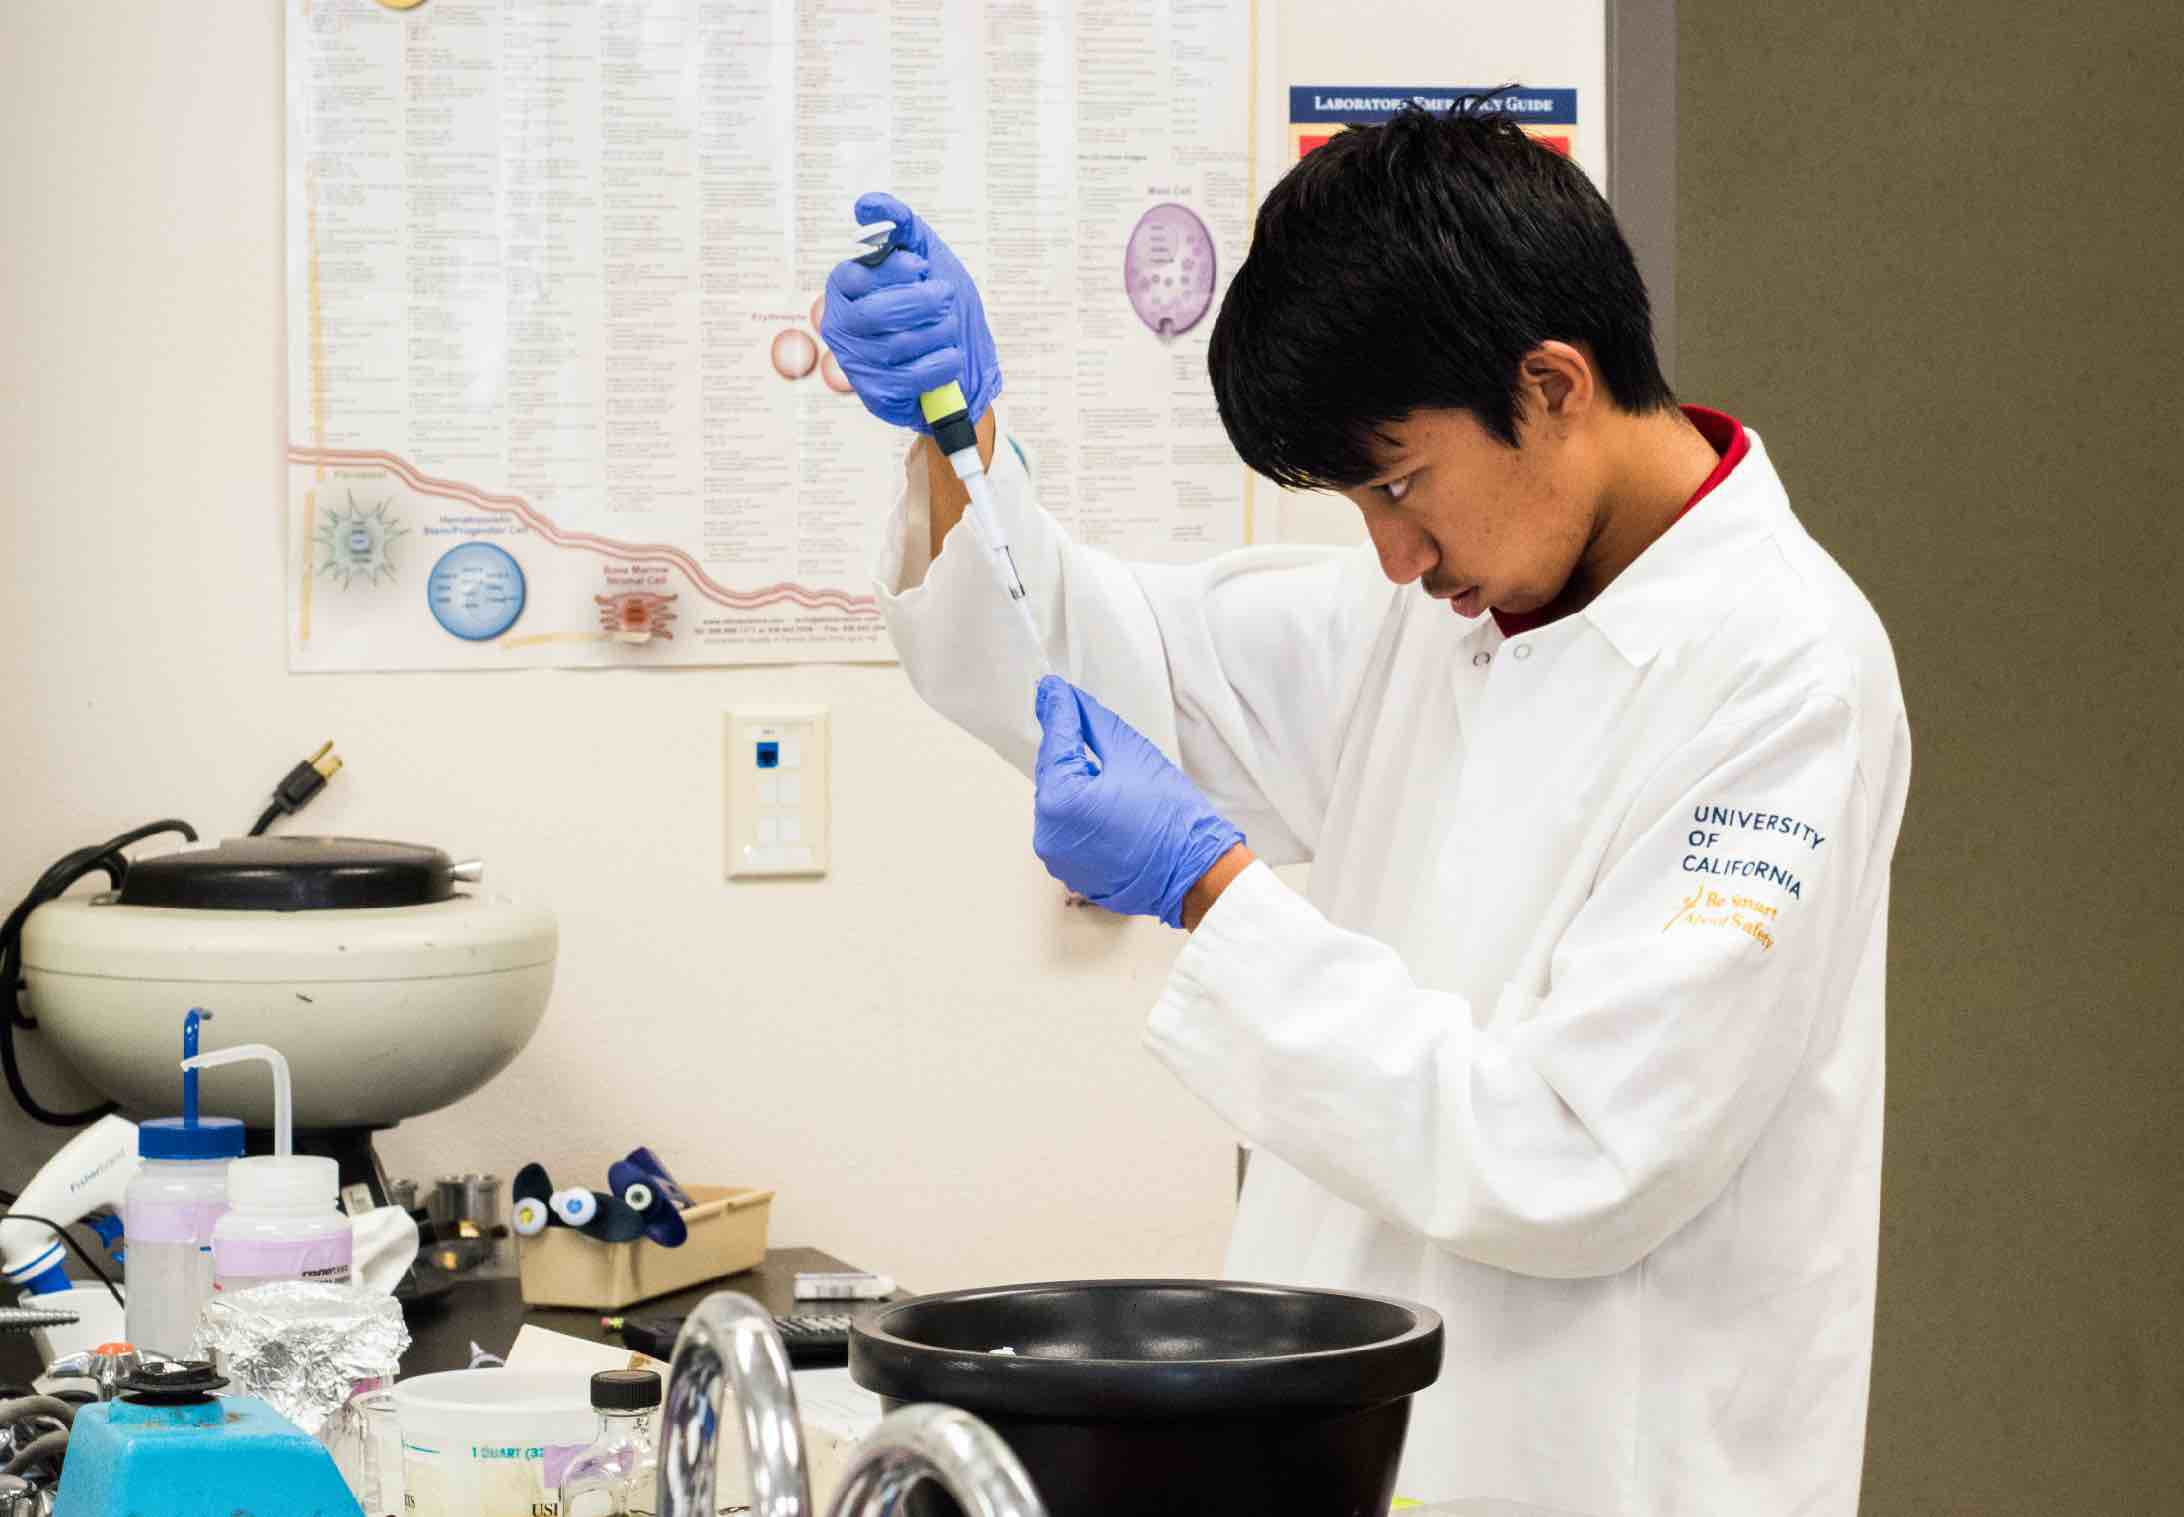 An undergraduate performs an experiment for the IGI's CRISPR course at UC Berkeley